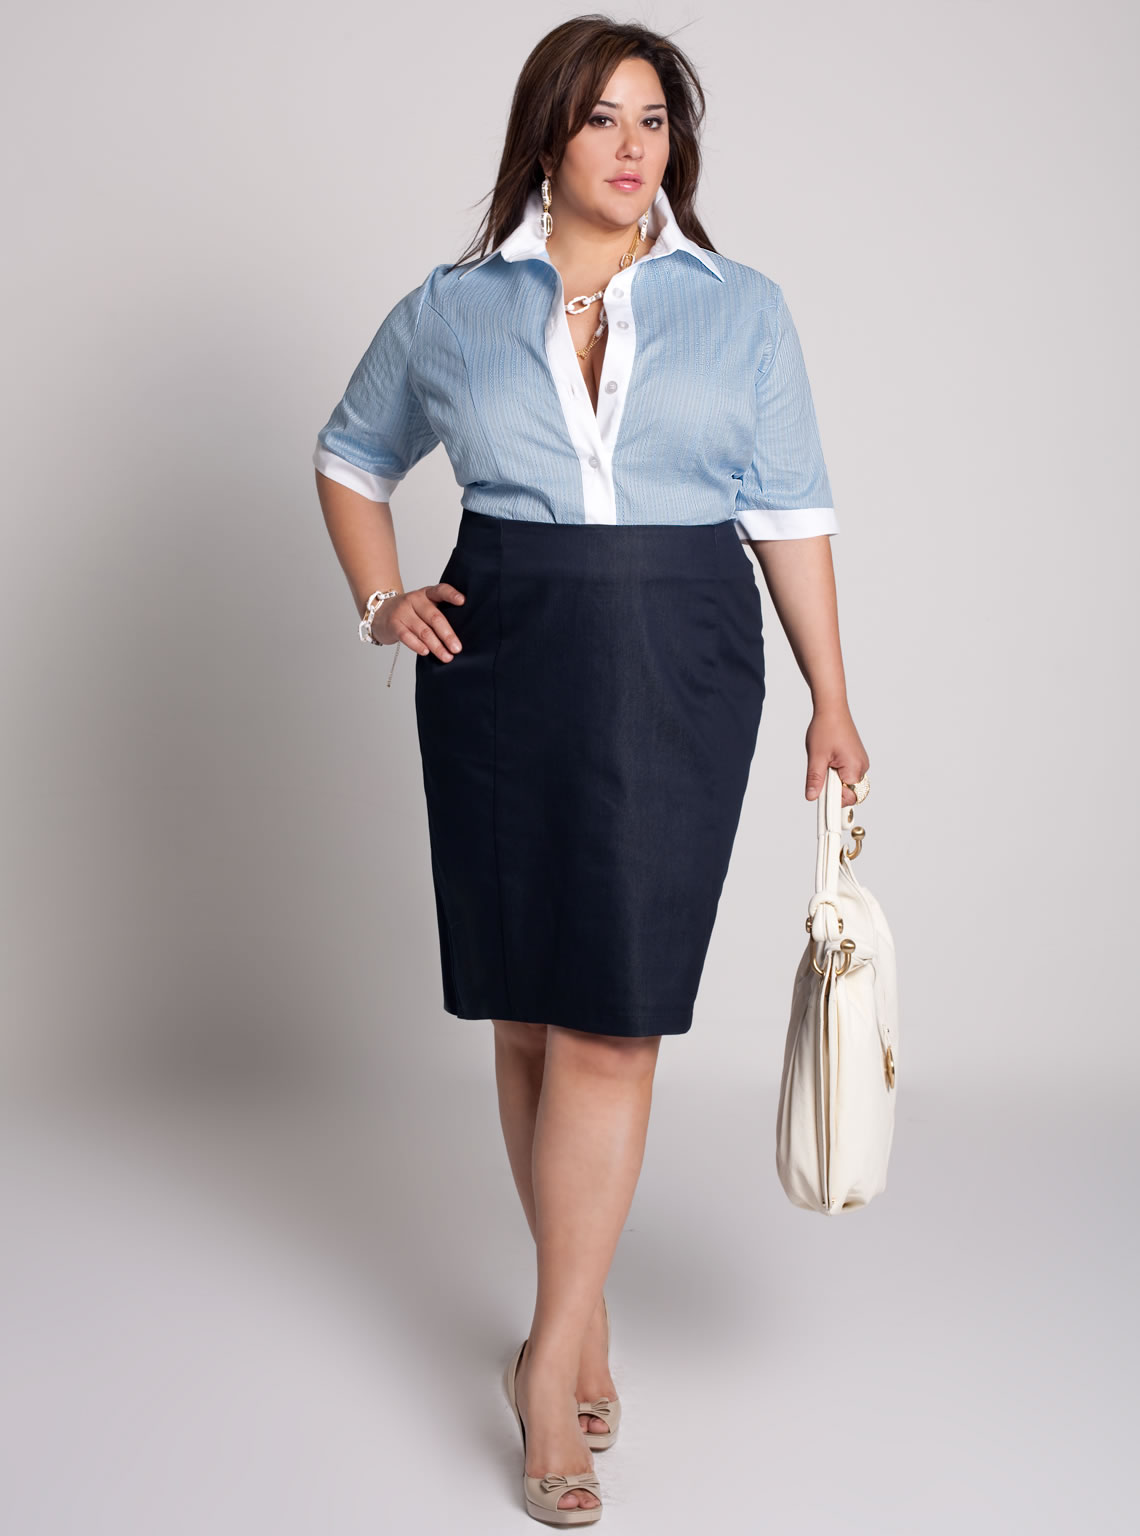 Shop Plus Size clothing at Lands' End. FREE Shipping on $50+ Orders. Buy women's plus size clothes: plus size dresses>plus size swimsuits>plus size coats>plus size tops>plus size jeans. skip to content skip to navigation skip to search.